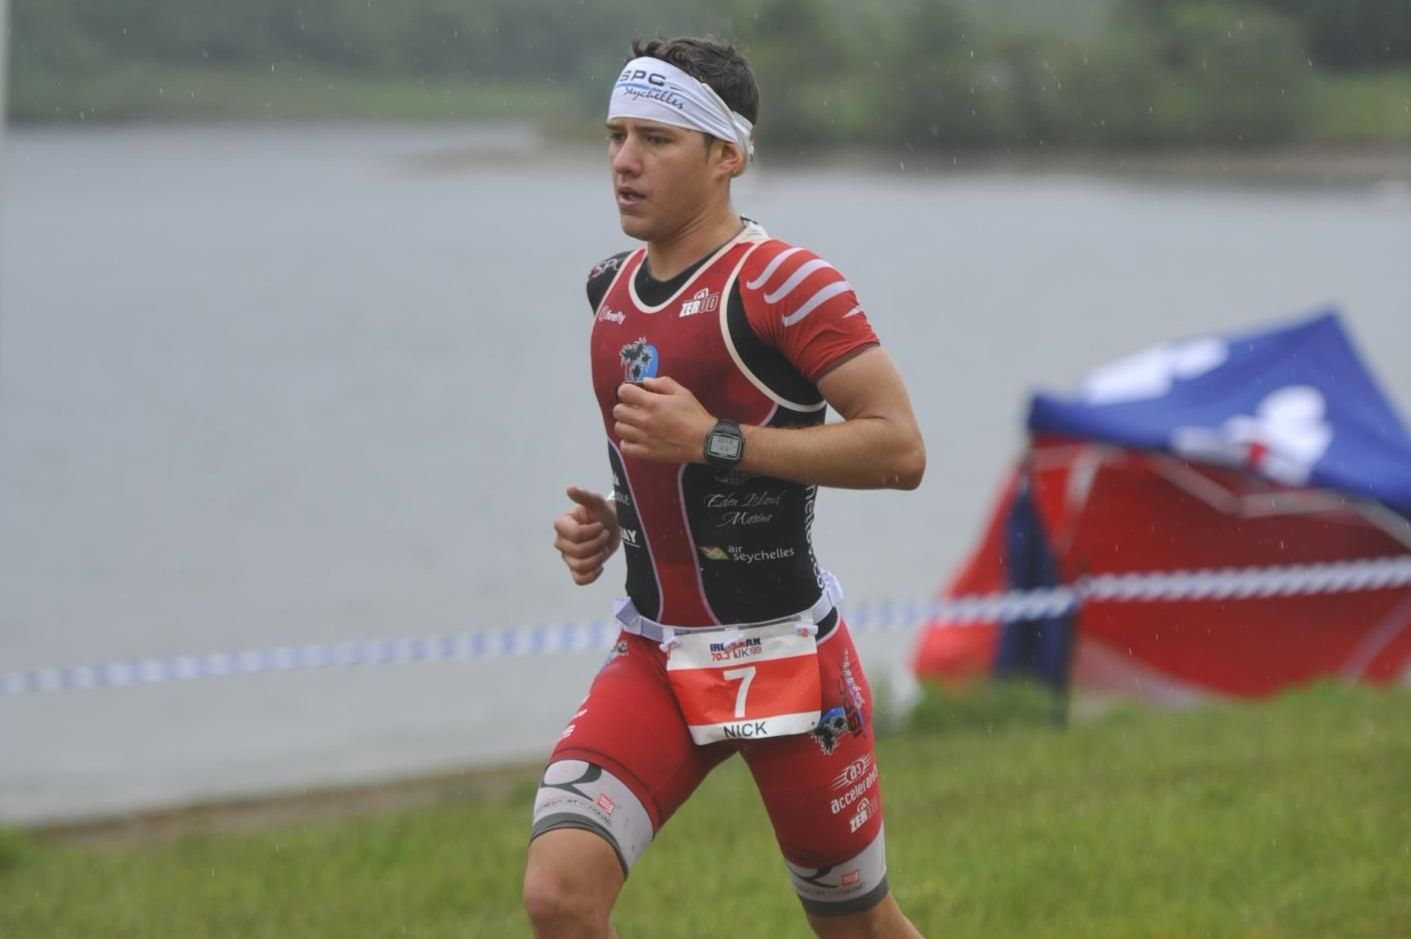 Ironman 70.3 UK 2013